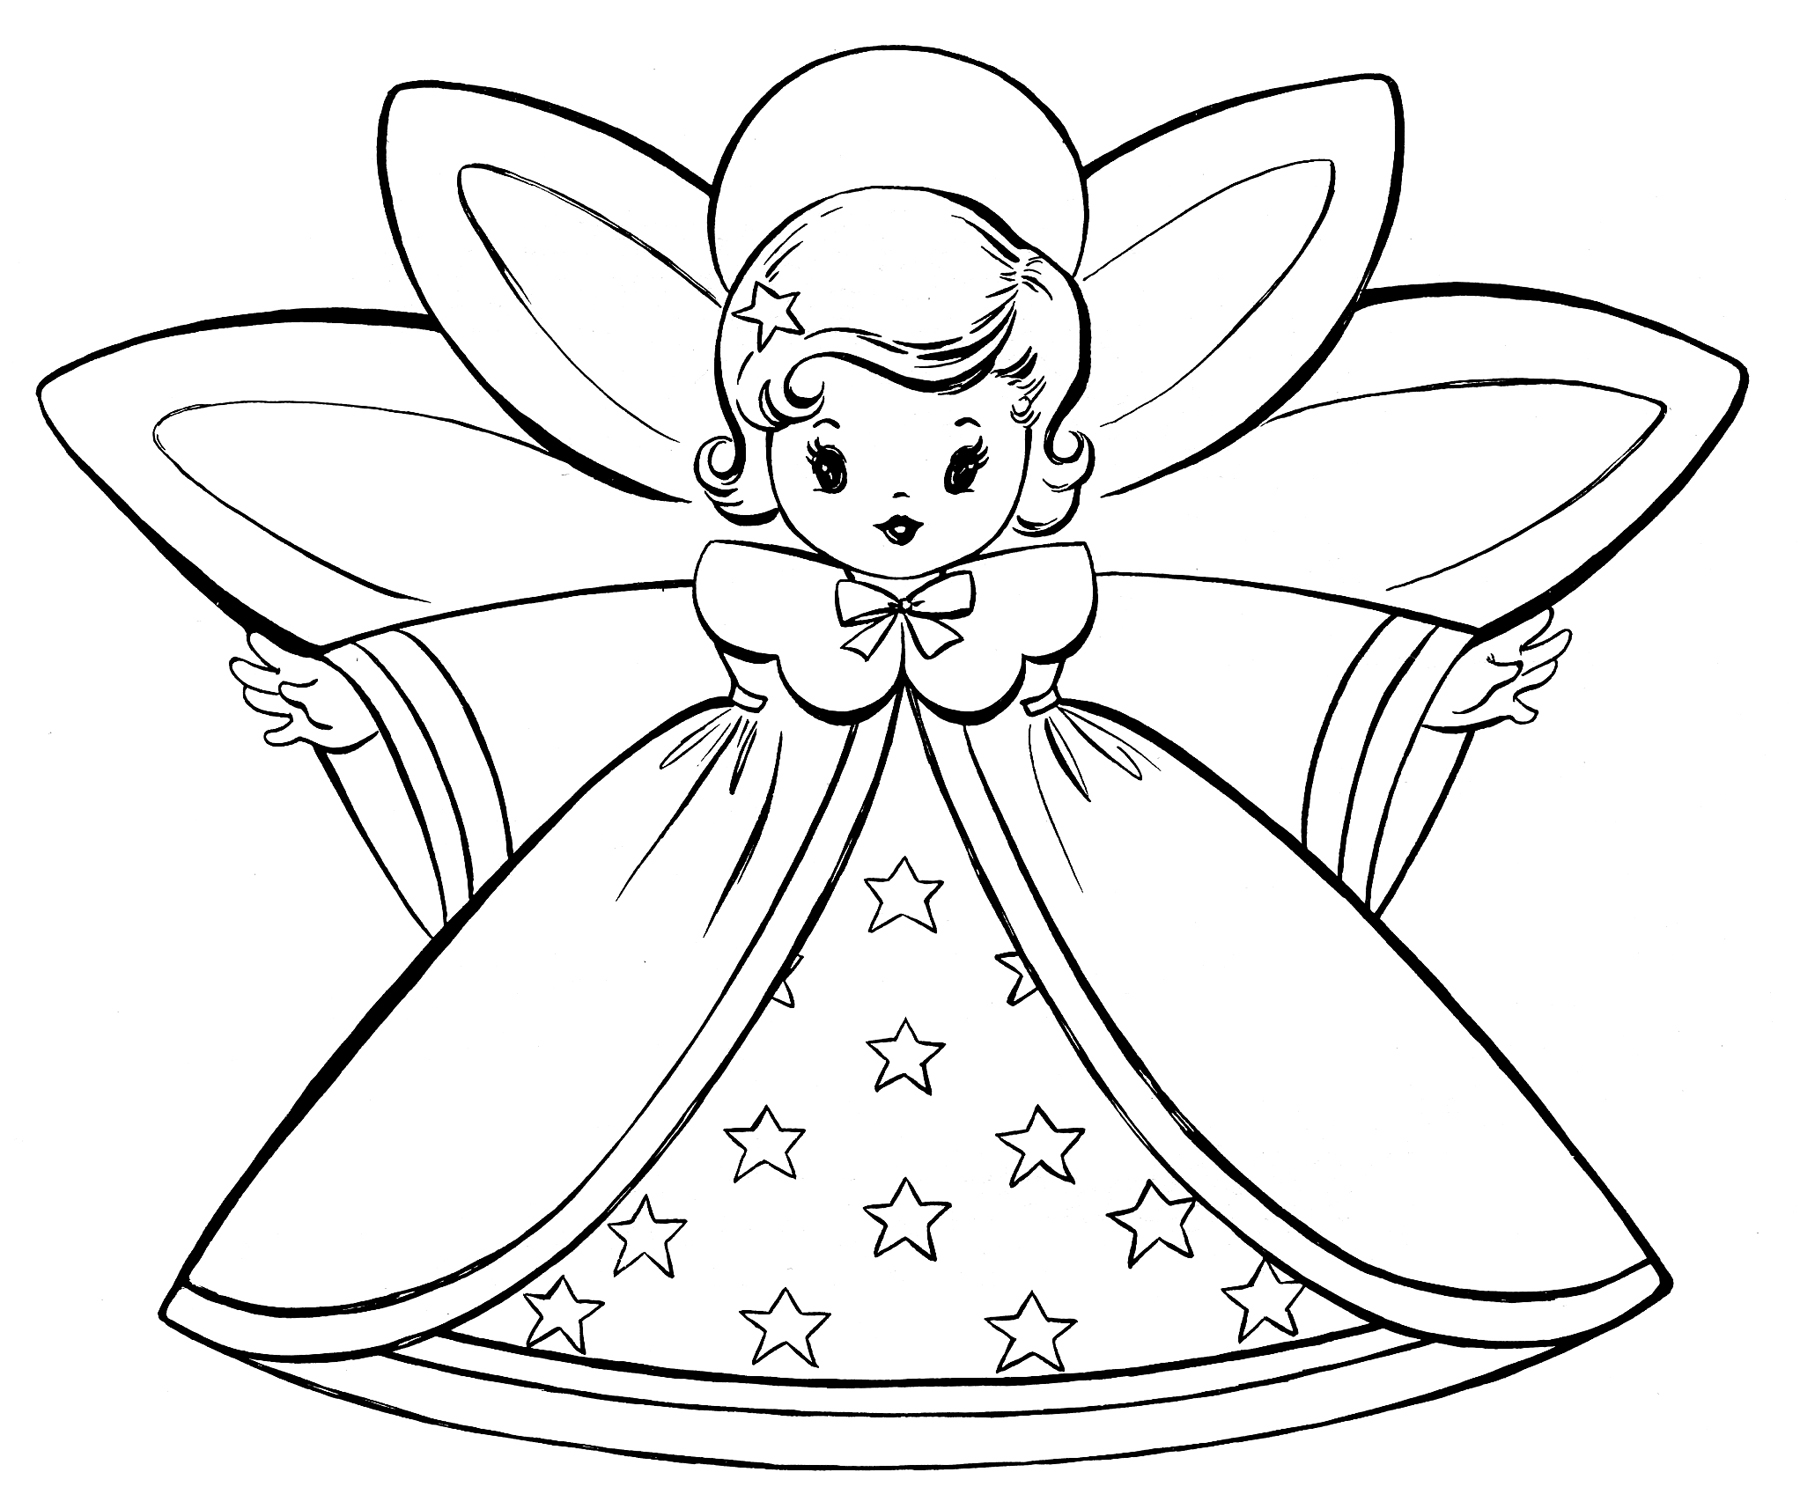 printable christmas coloring pages angels - photo#28